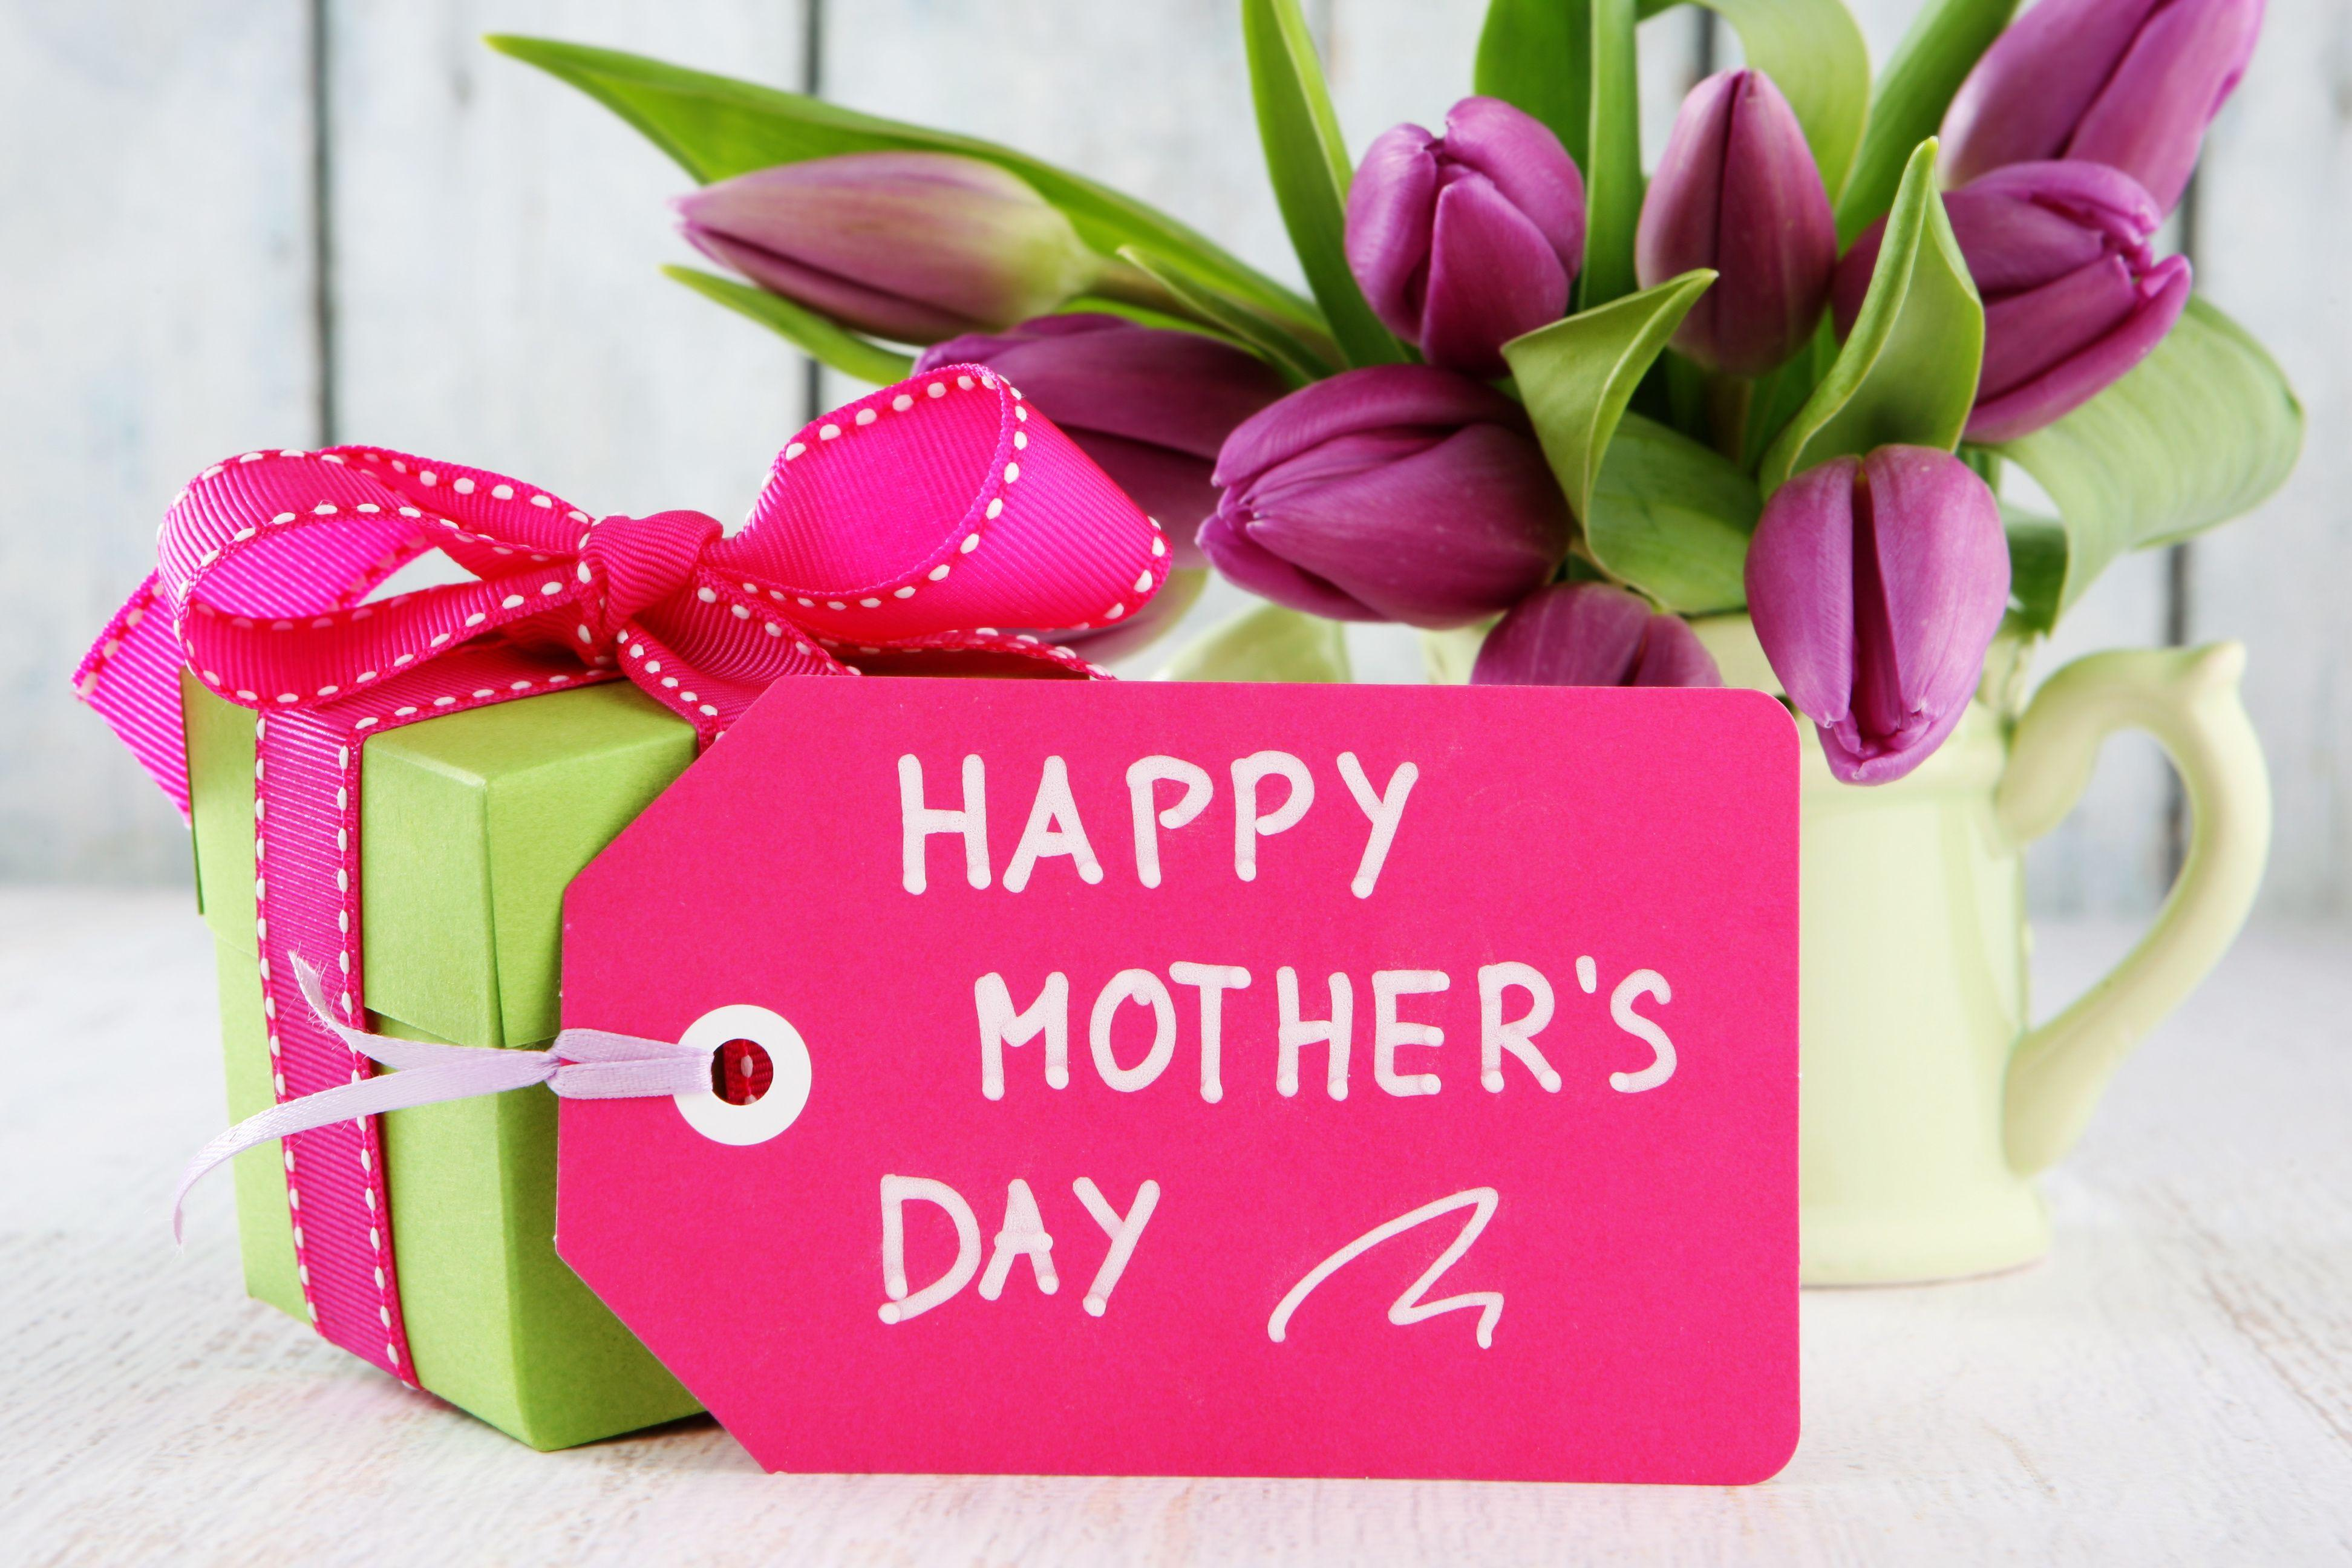 Mother's Day 2018 Wallpapers - Wallpaper Cave